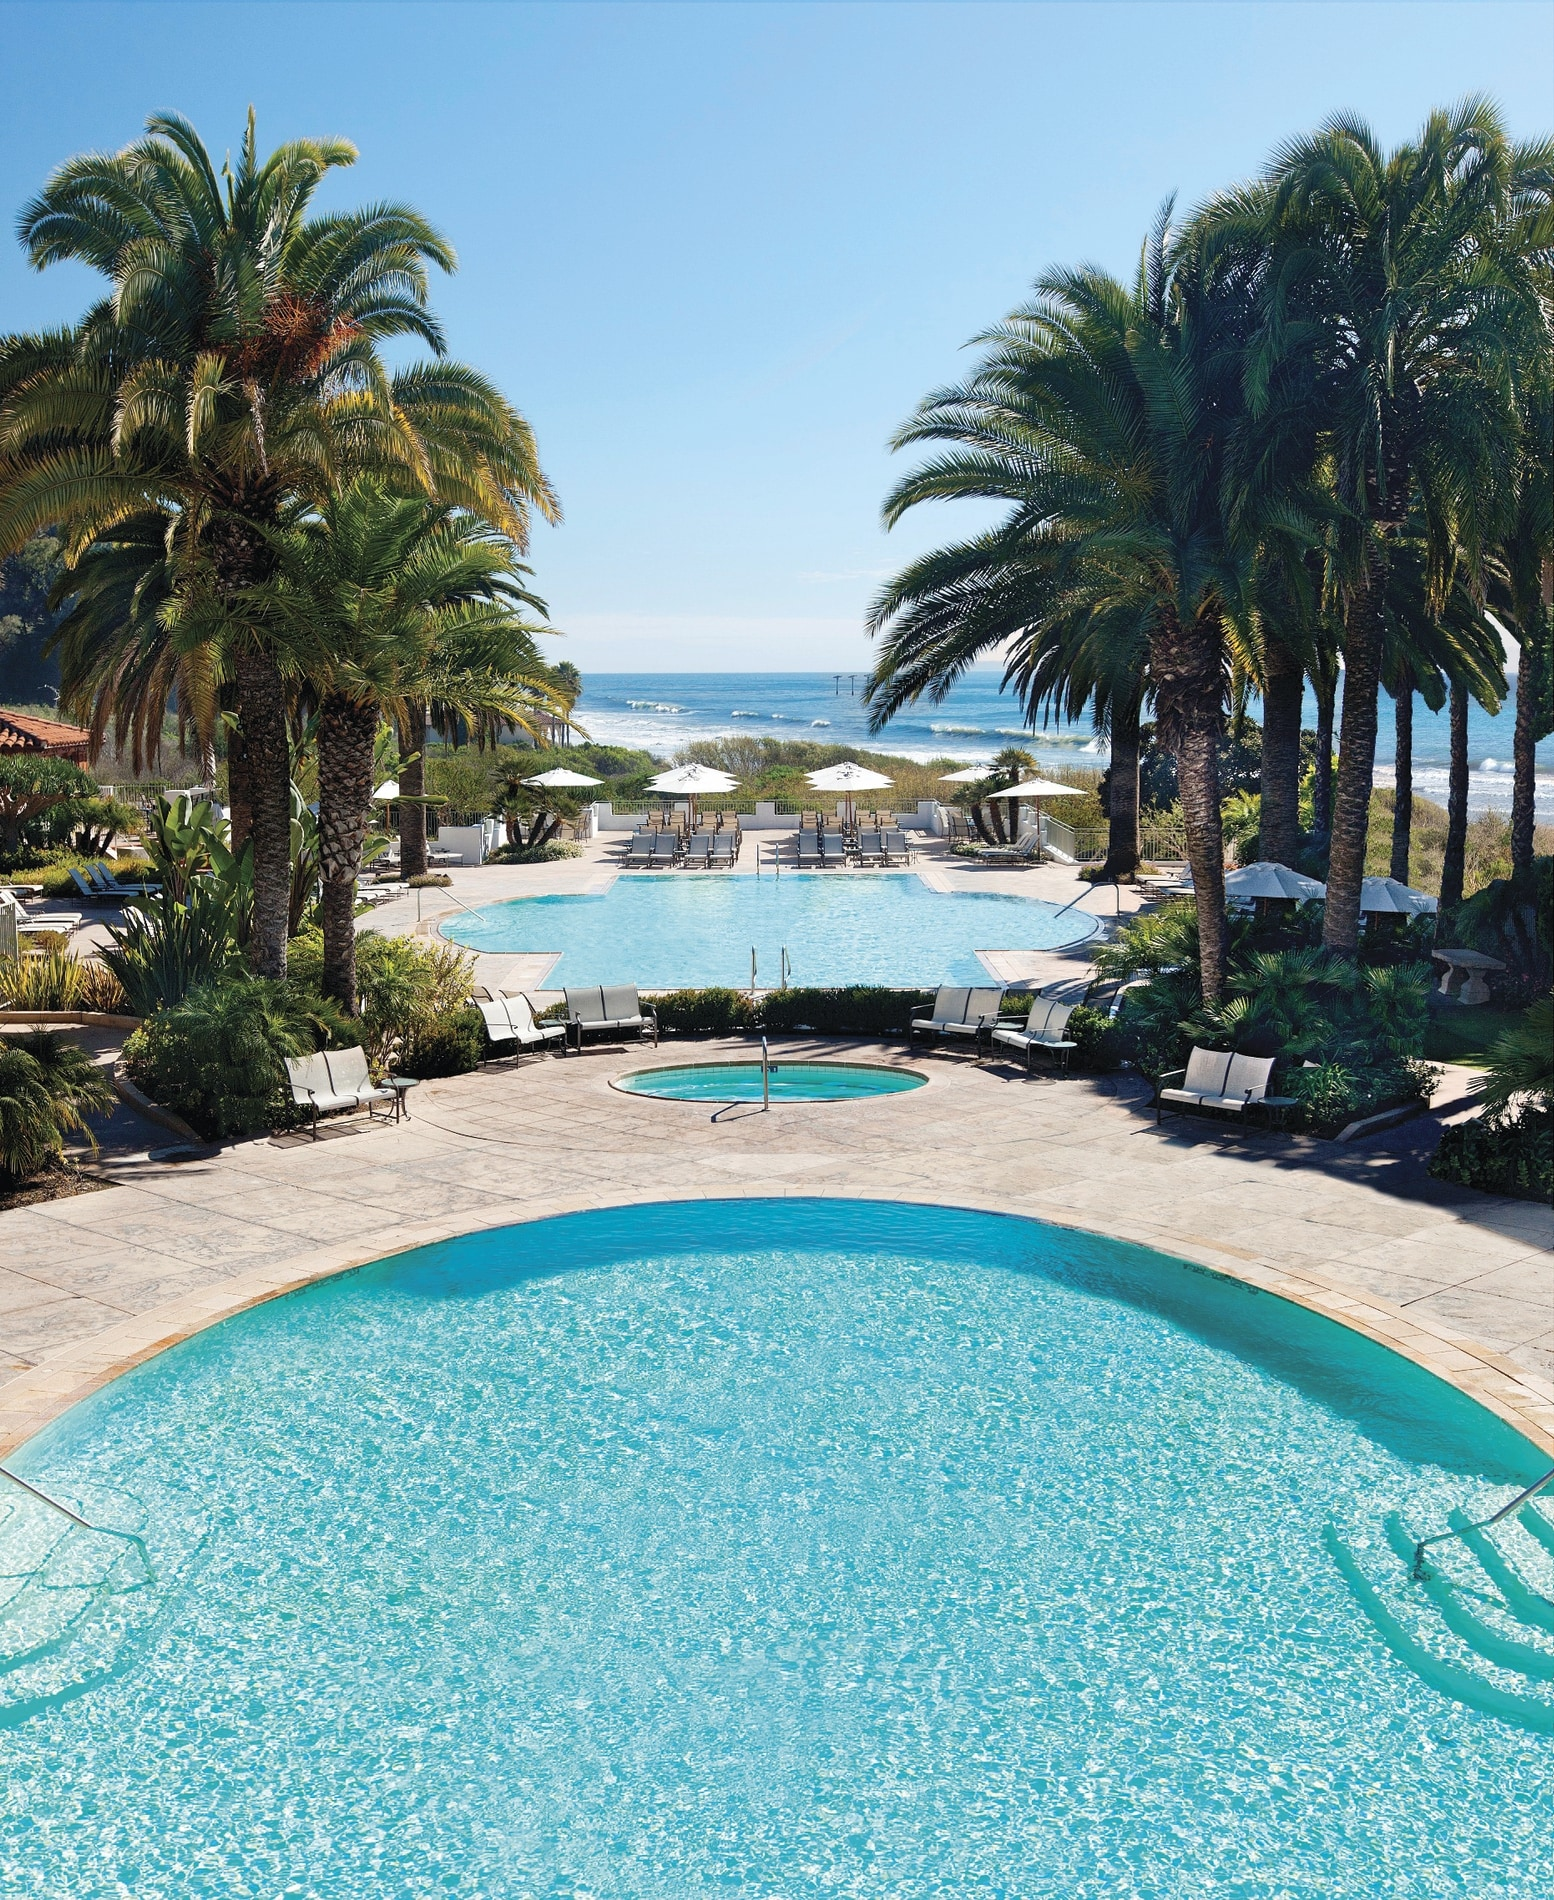 Pool_Daytime_The_Ritz-Carlton_Bacara,_Santa_Barbara.jpg